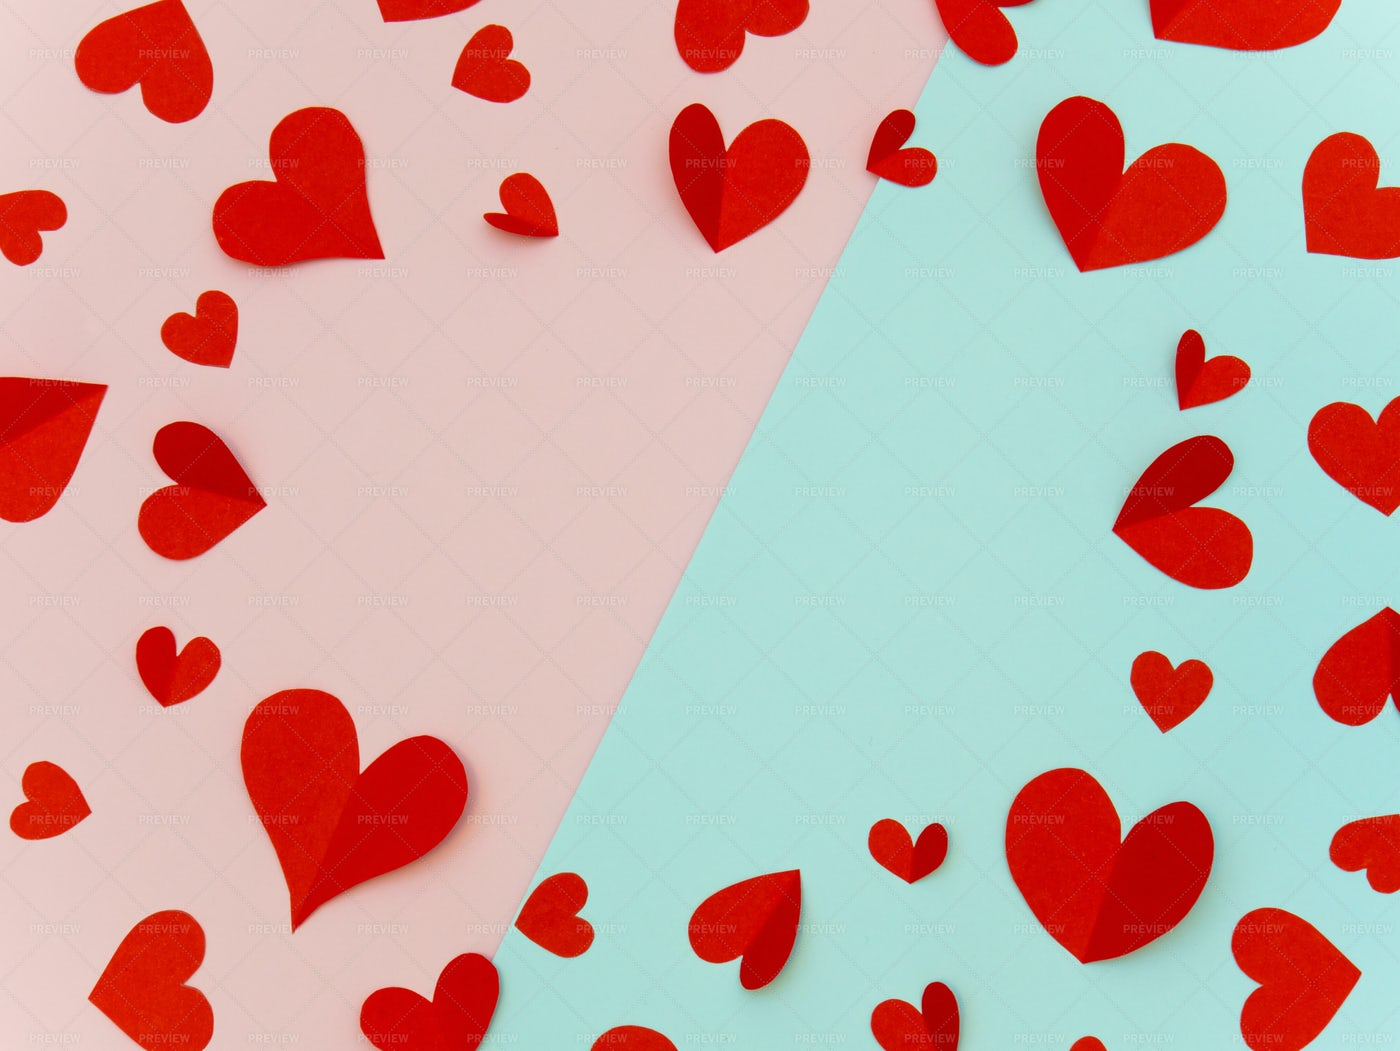 Valentine Background With Red Heart: Stock Photos